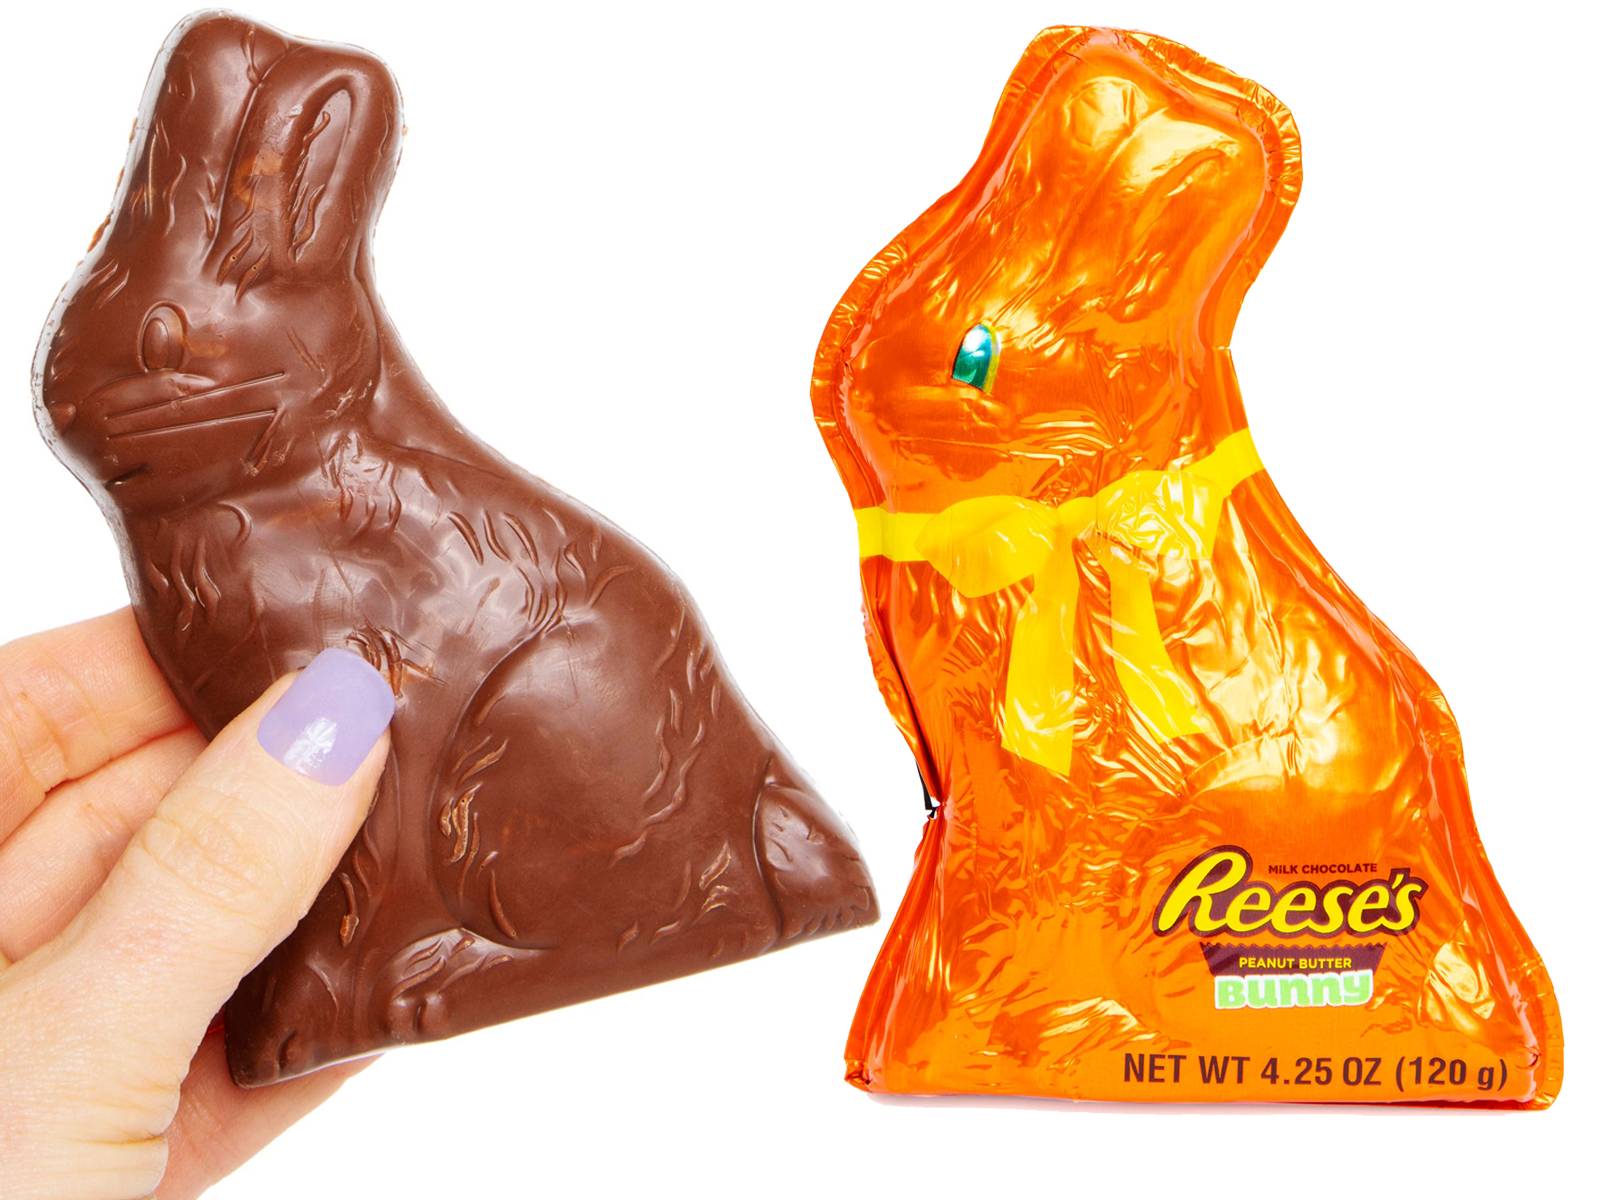 Reese's Peanut Butter Bunny